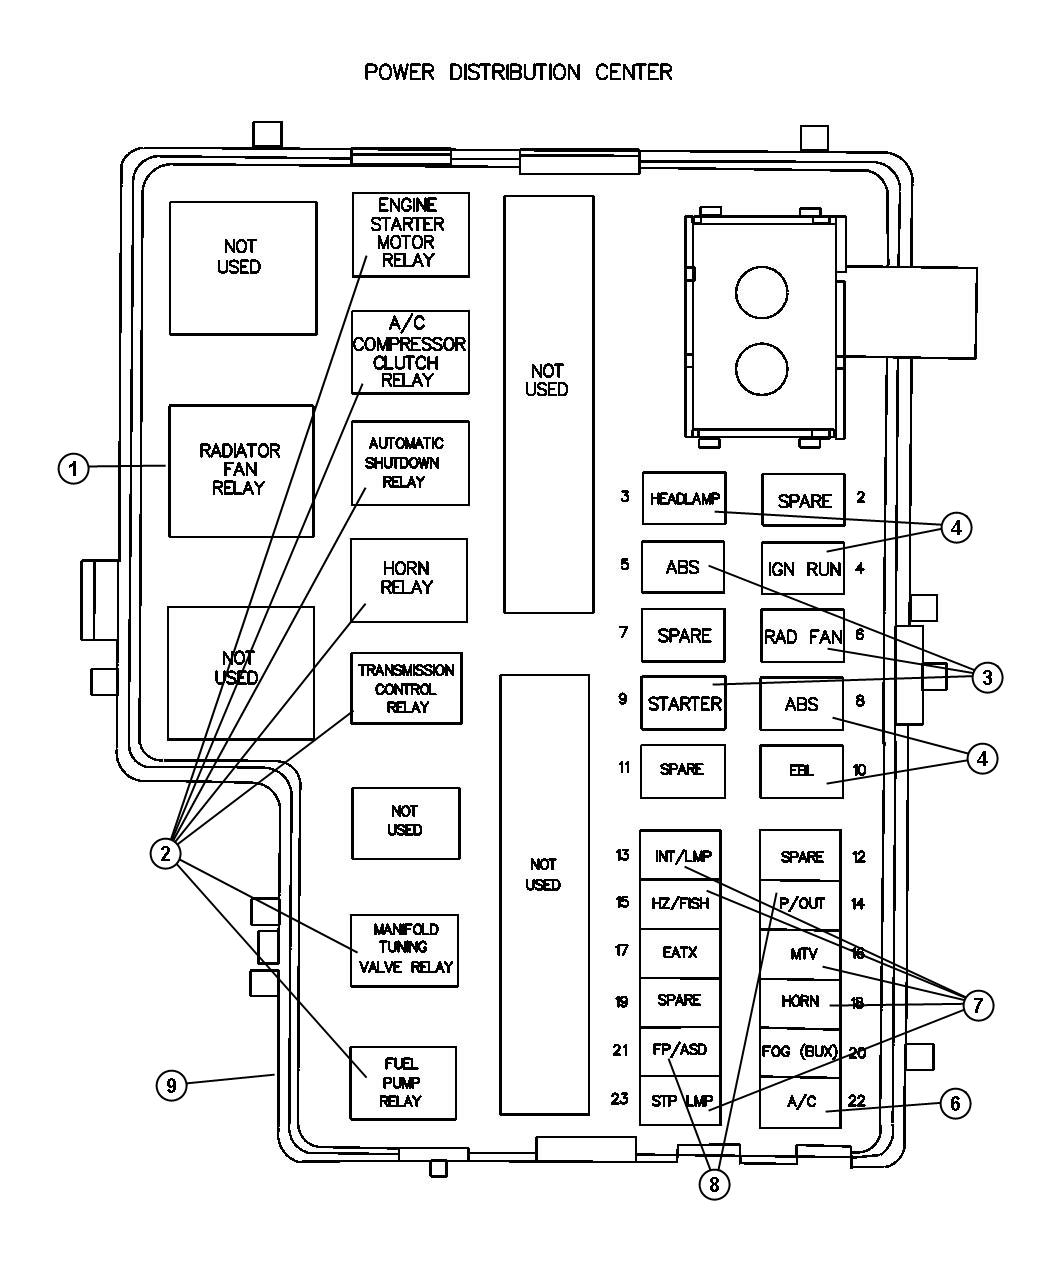 96 Plymouth Wiring Diagram on 2002 ford f 150 gem module location